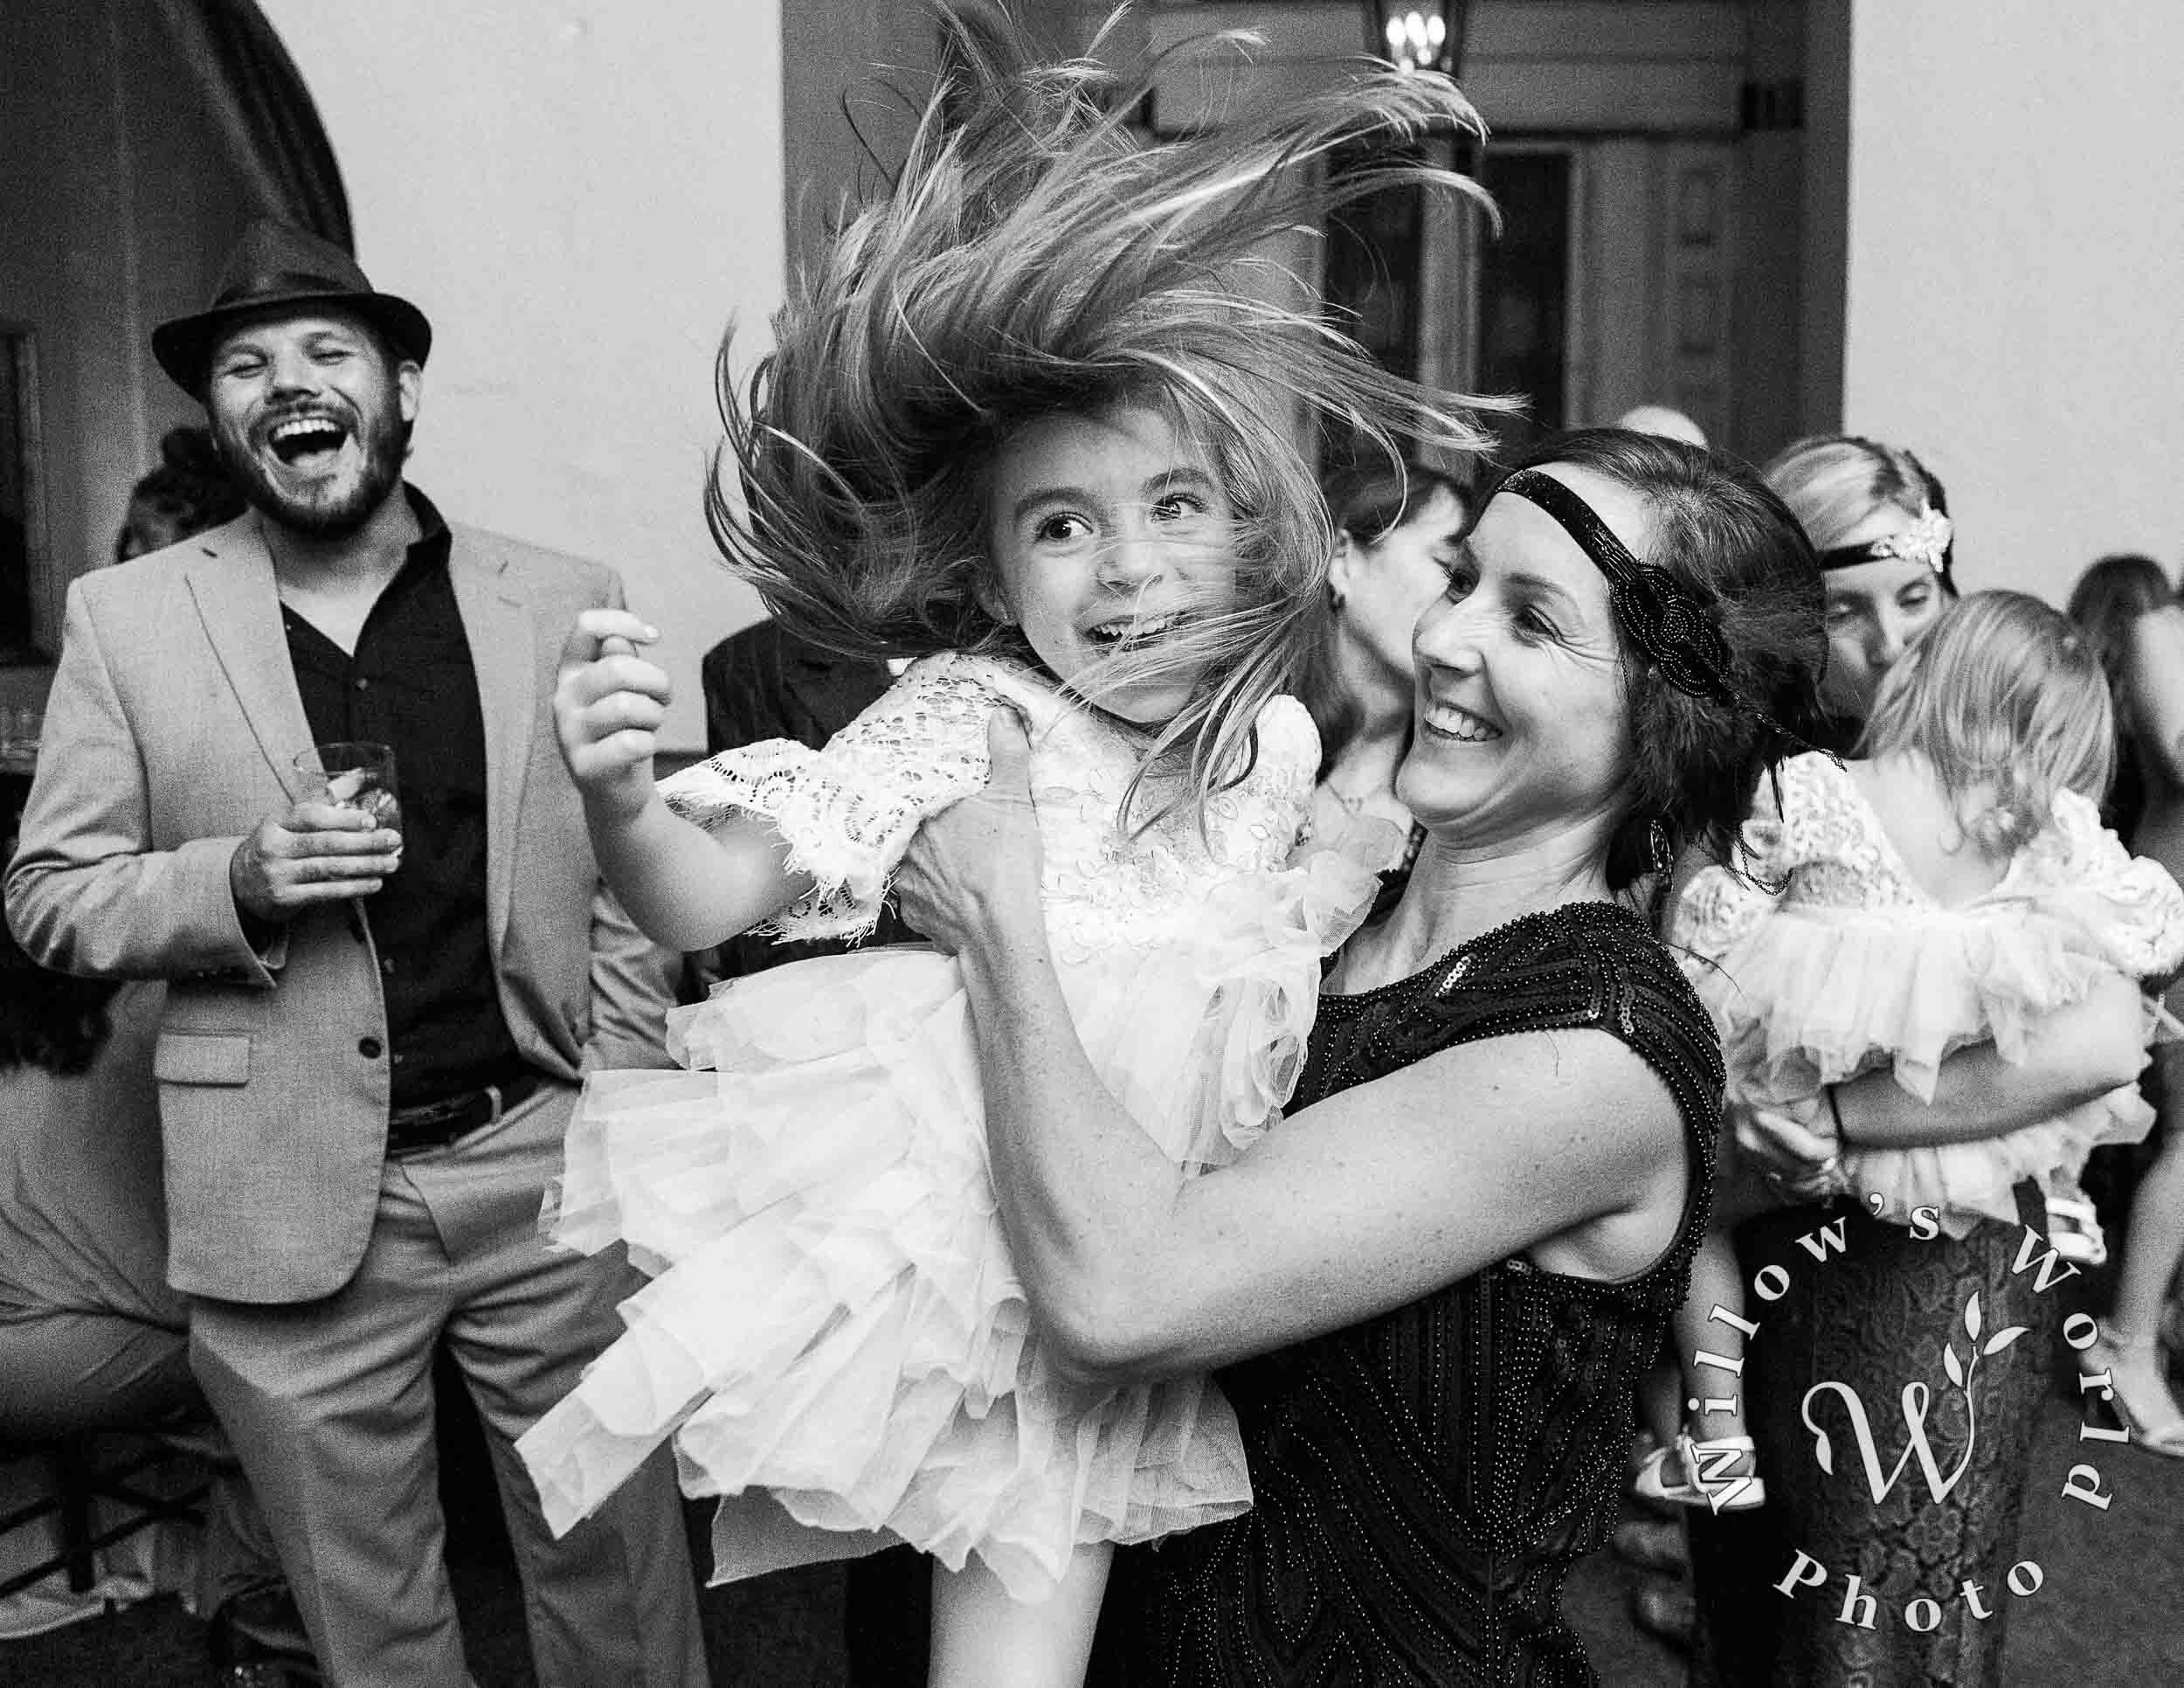 22-Latrobes-on-Royal-New-Orleans-Wedding-Reception-Photo-Willows-World-Photo-Edit.jpg